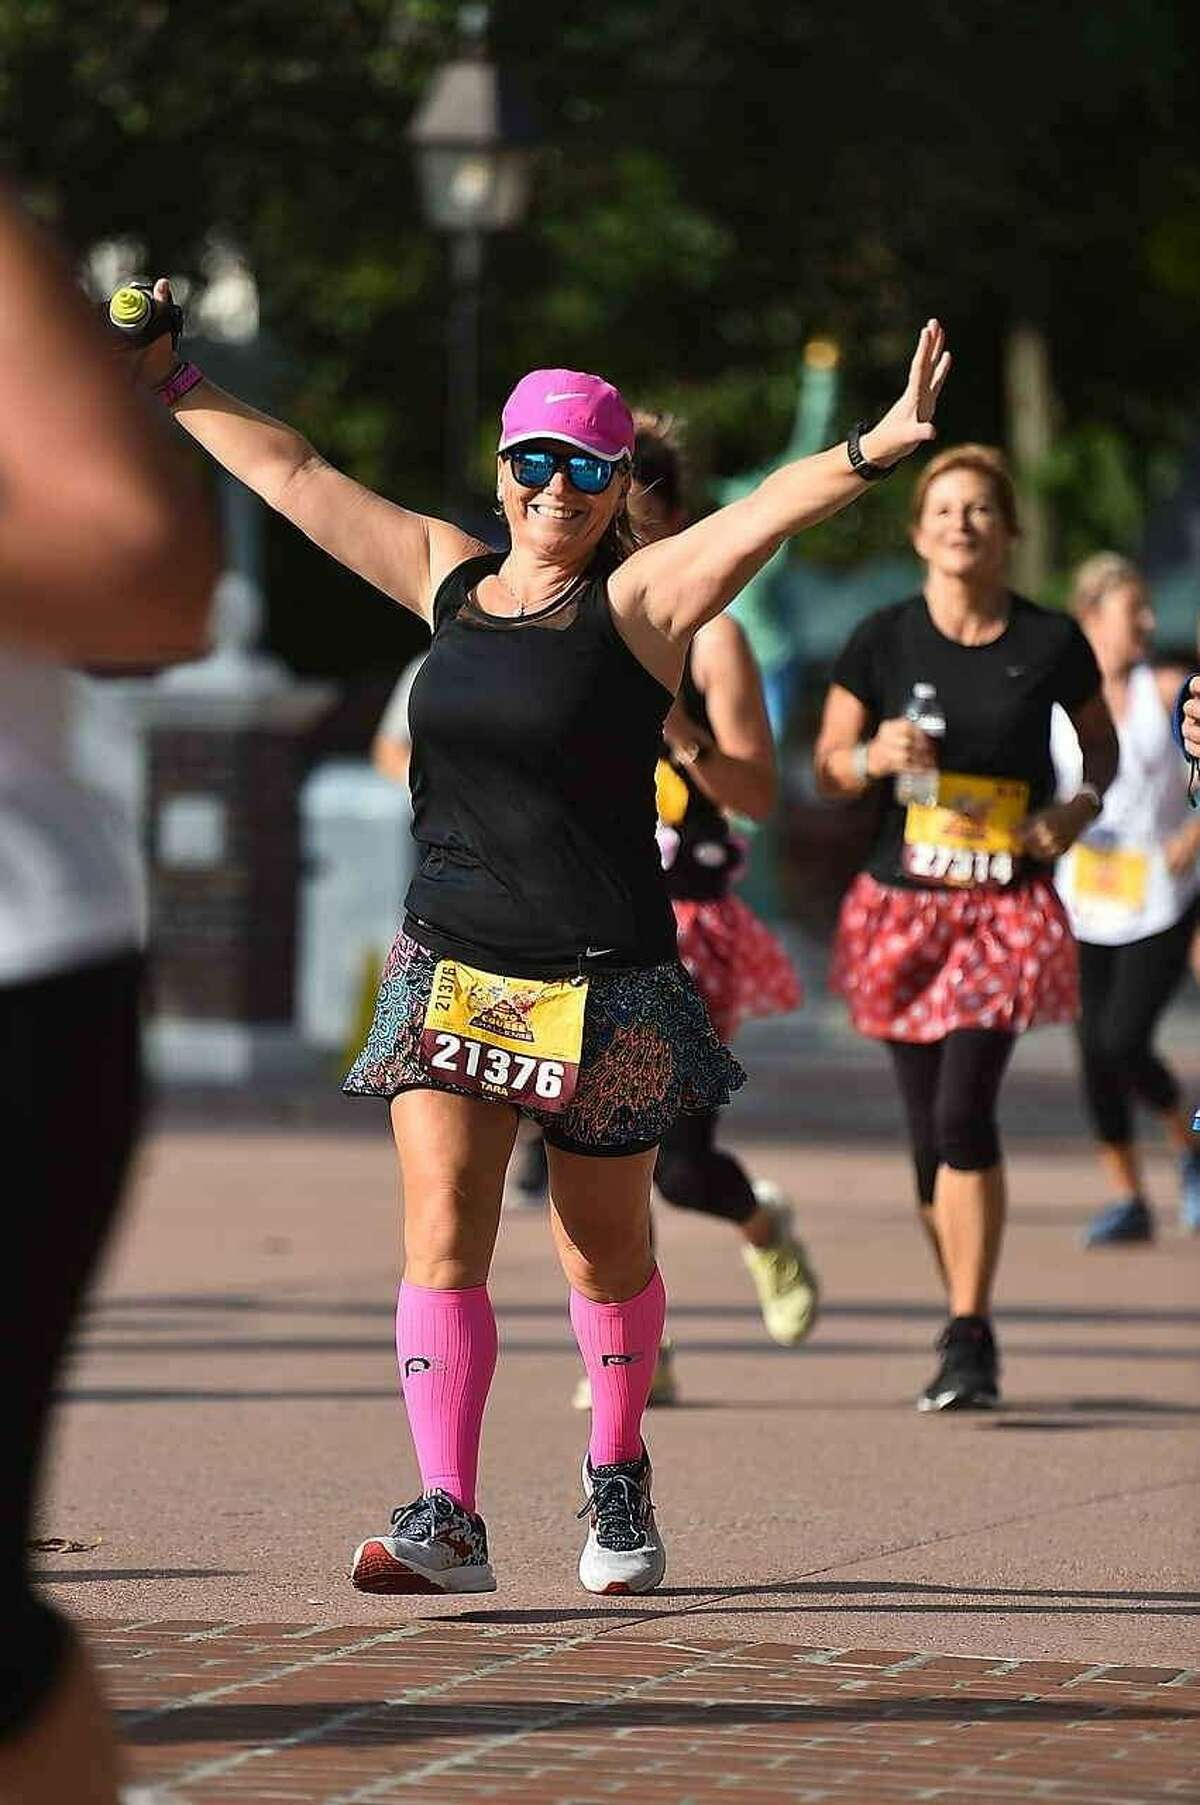 Avid Bay Area runner Tara Ready is eager to promote breast cancer awareness after her own experience with the illness.